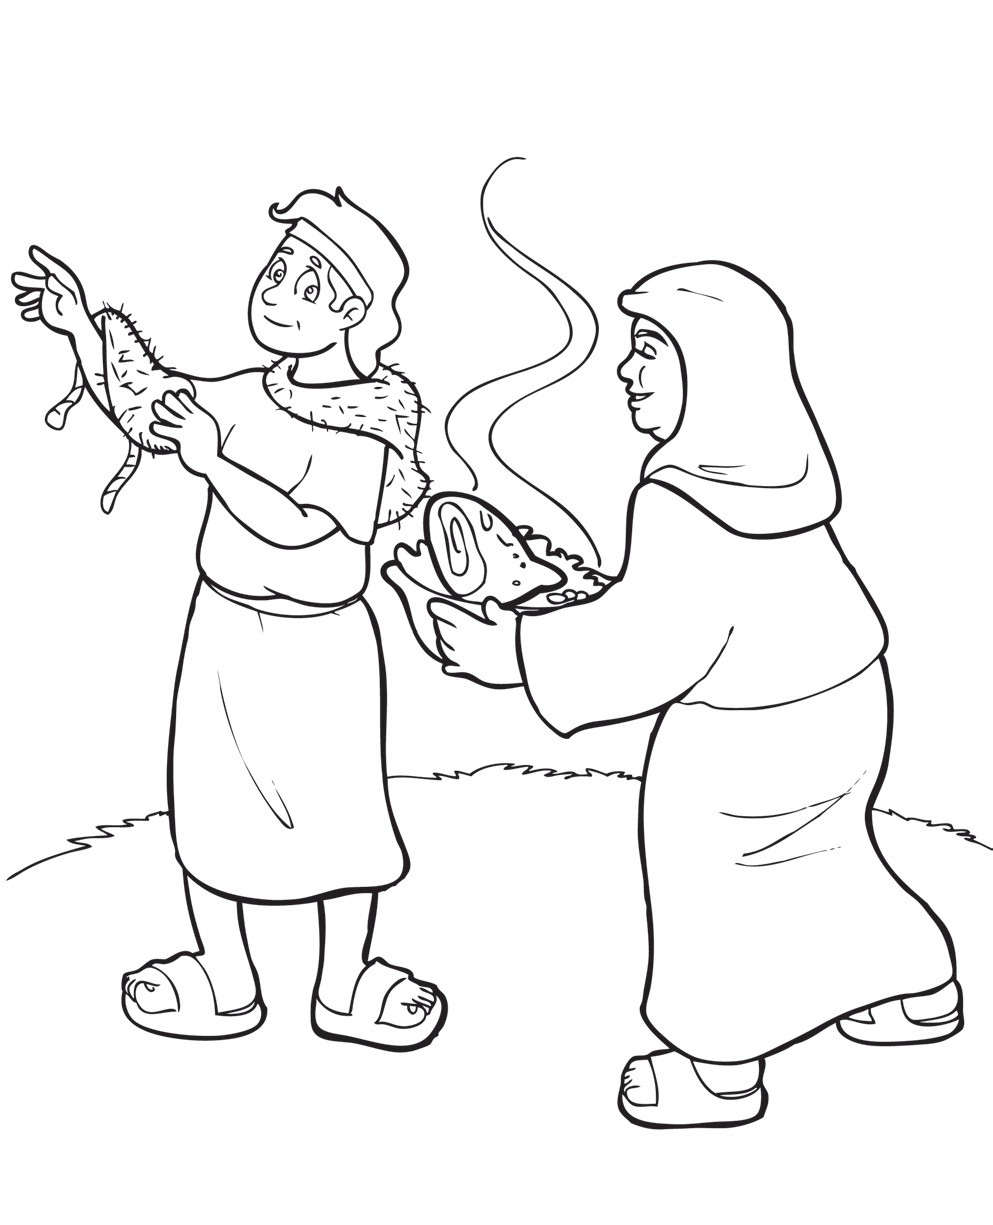 Jacob and Esau Coloring Pages - Best Coloring Pages For Kids